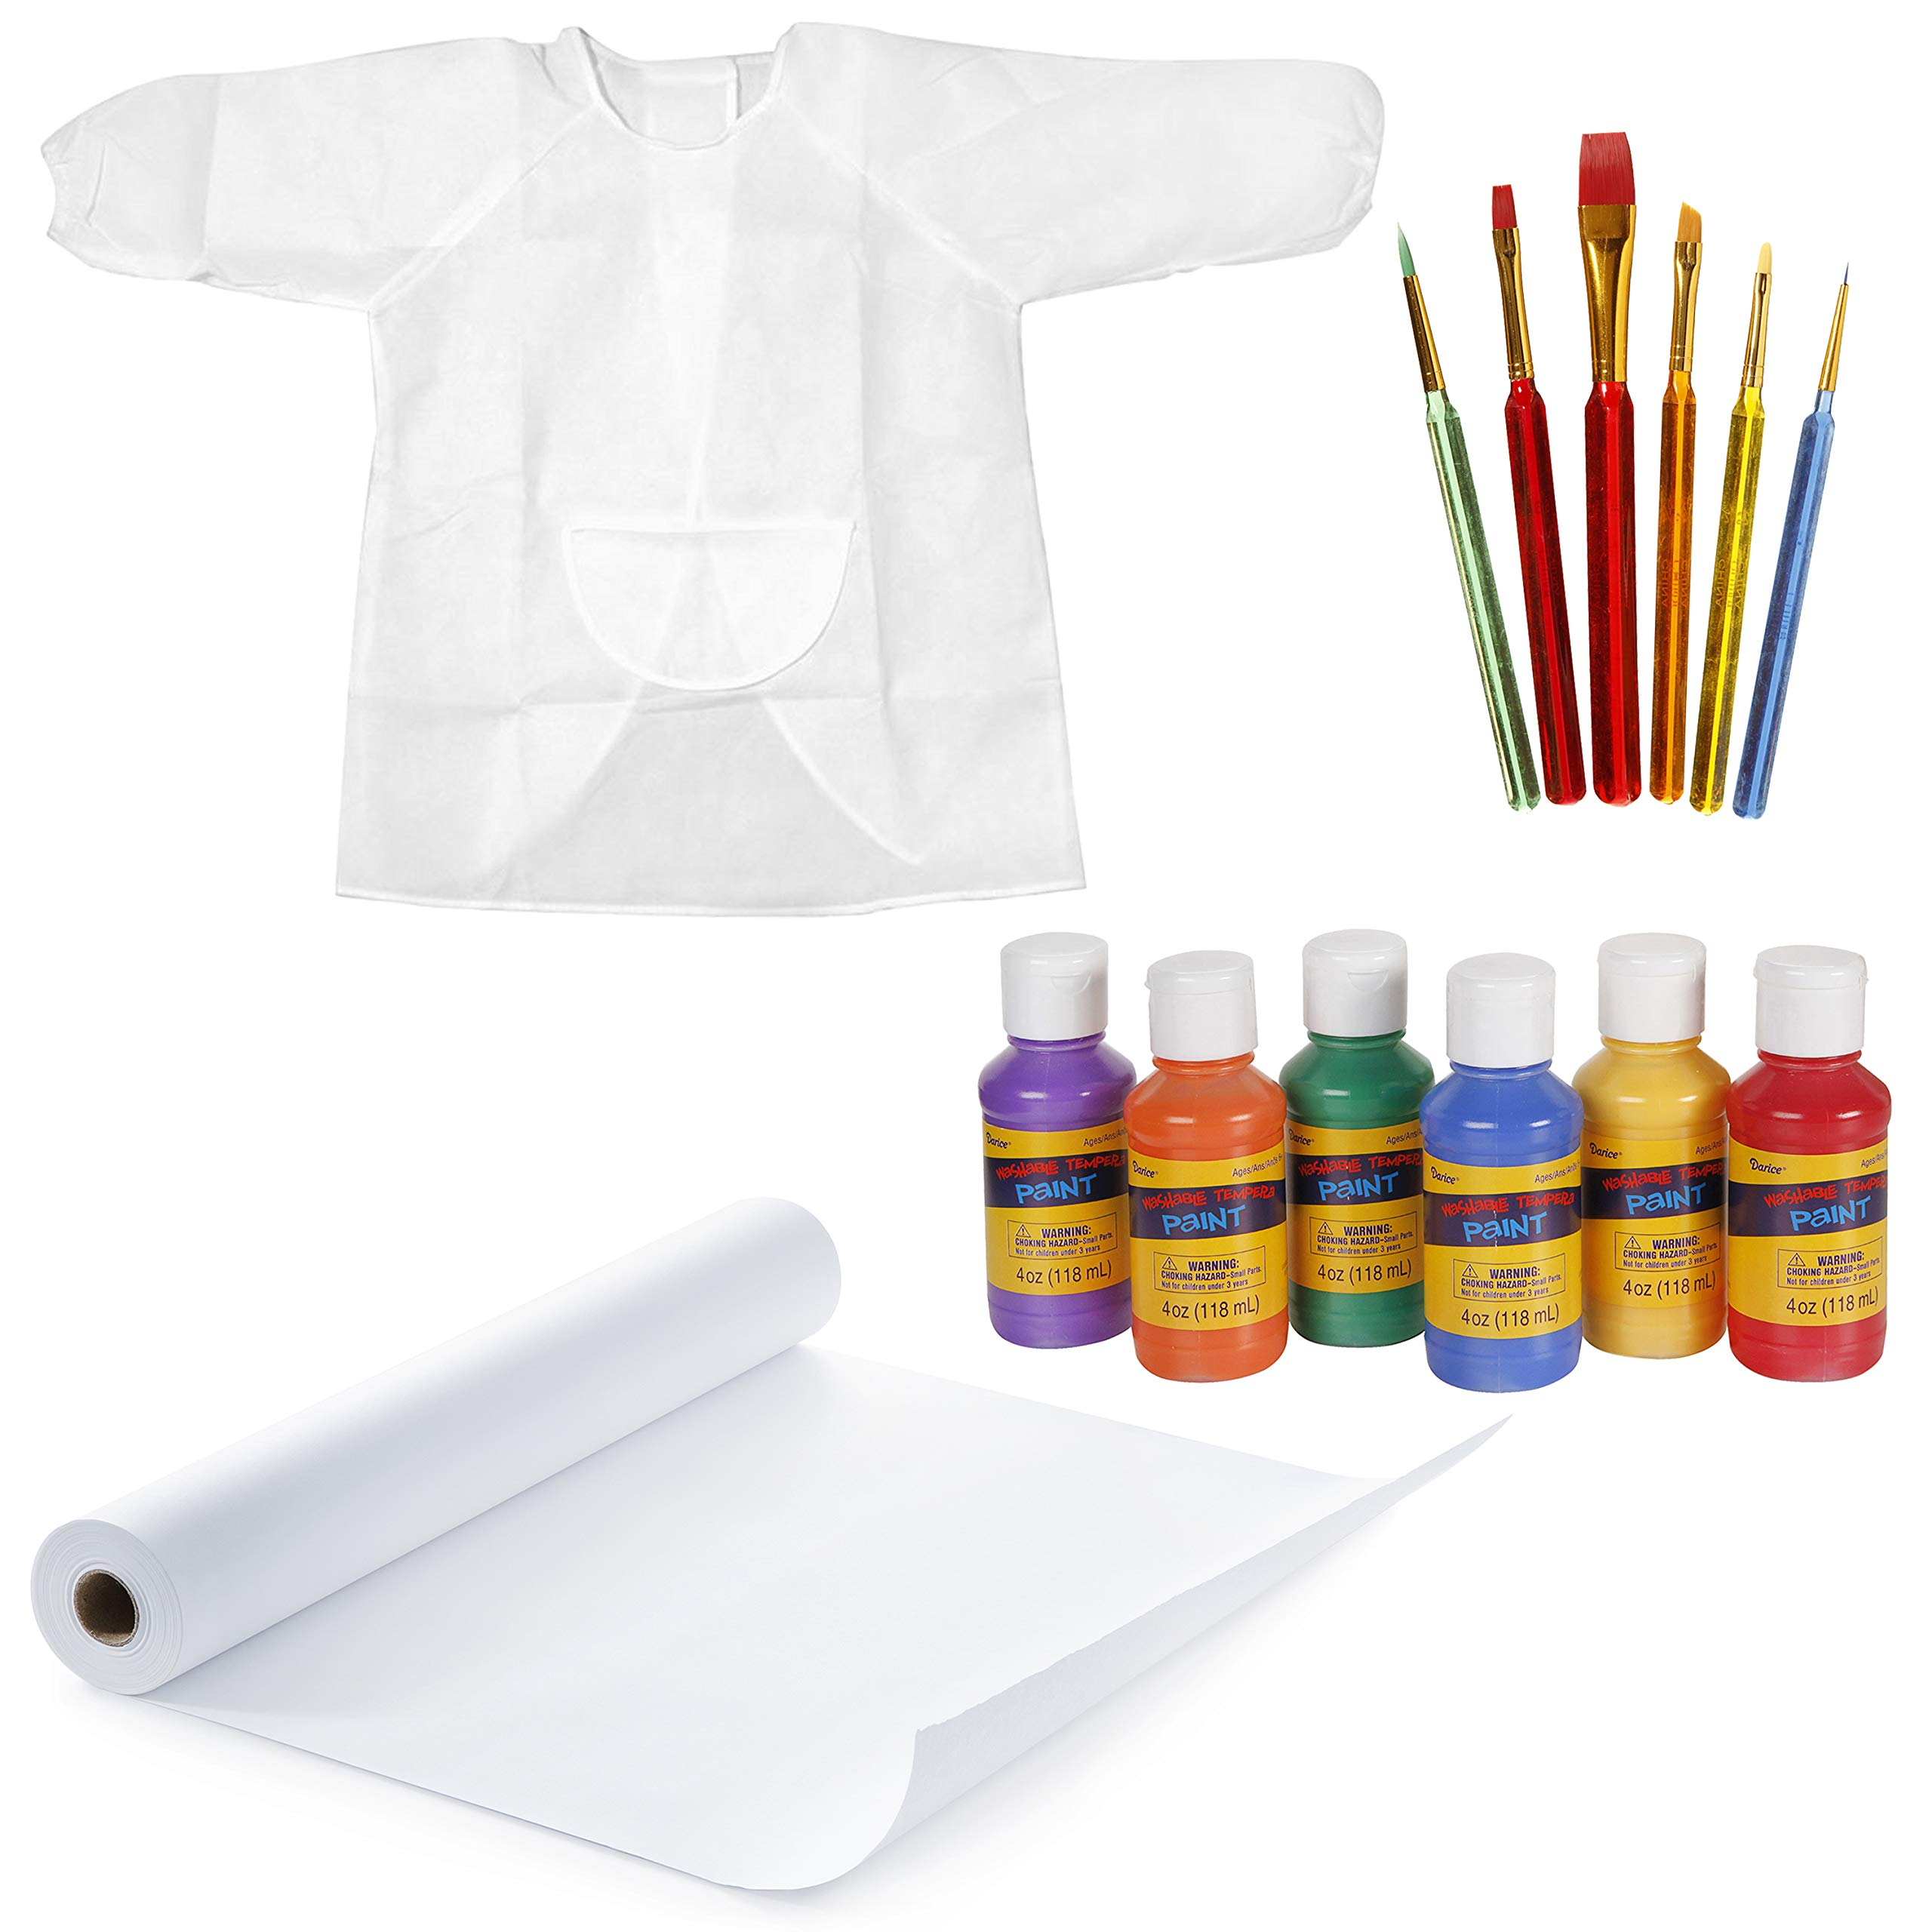 Darice Young Artist Set: Painting Supplies for Kids, 14-Piece Bundle